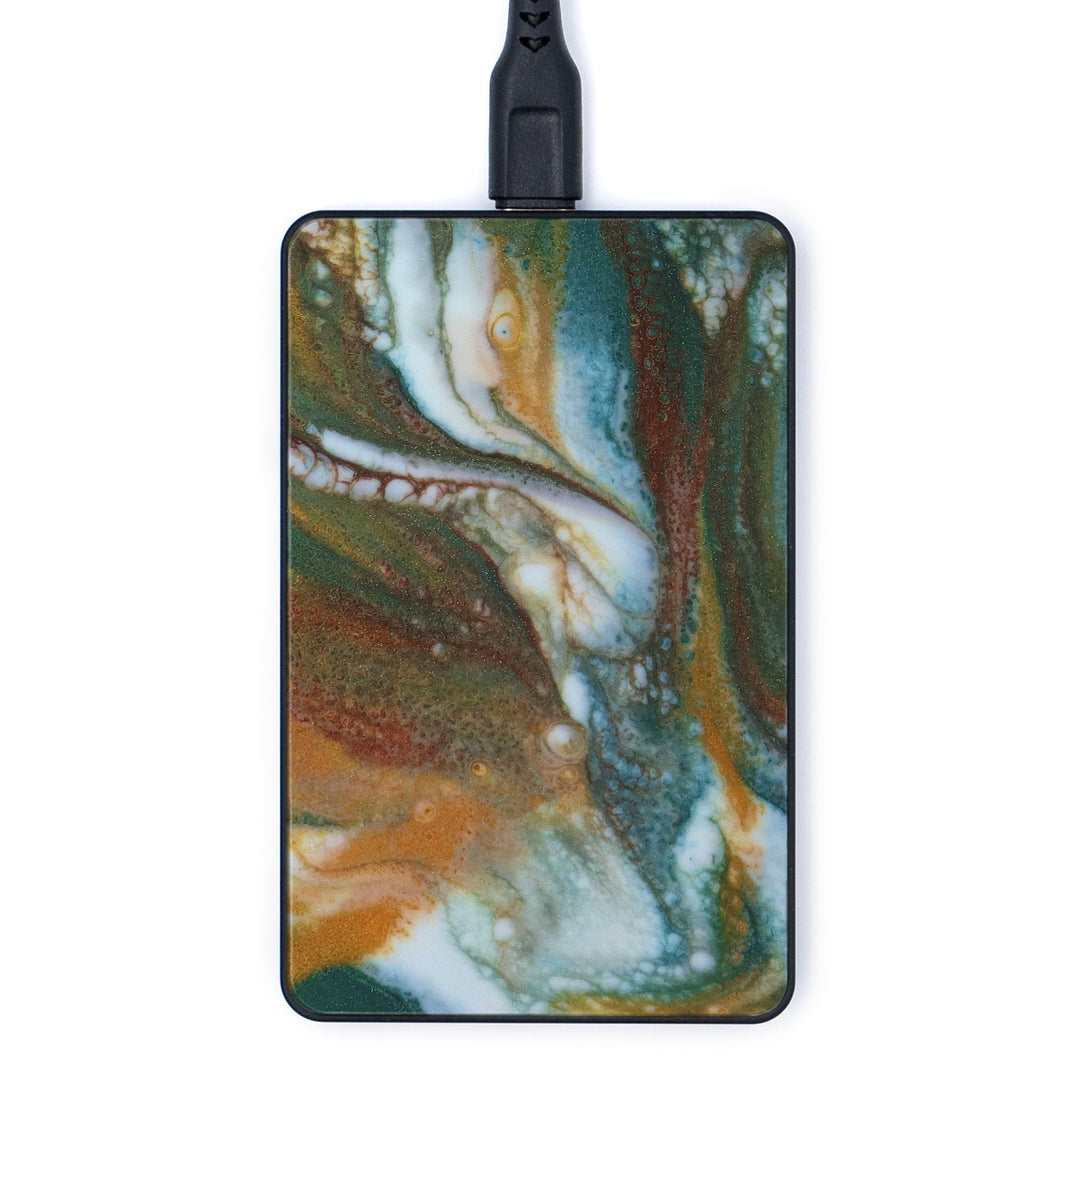 Thin ResinArt Wireless Charger - Amour (Teal & Gold, 347715)